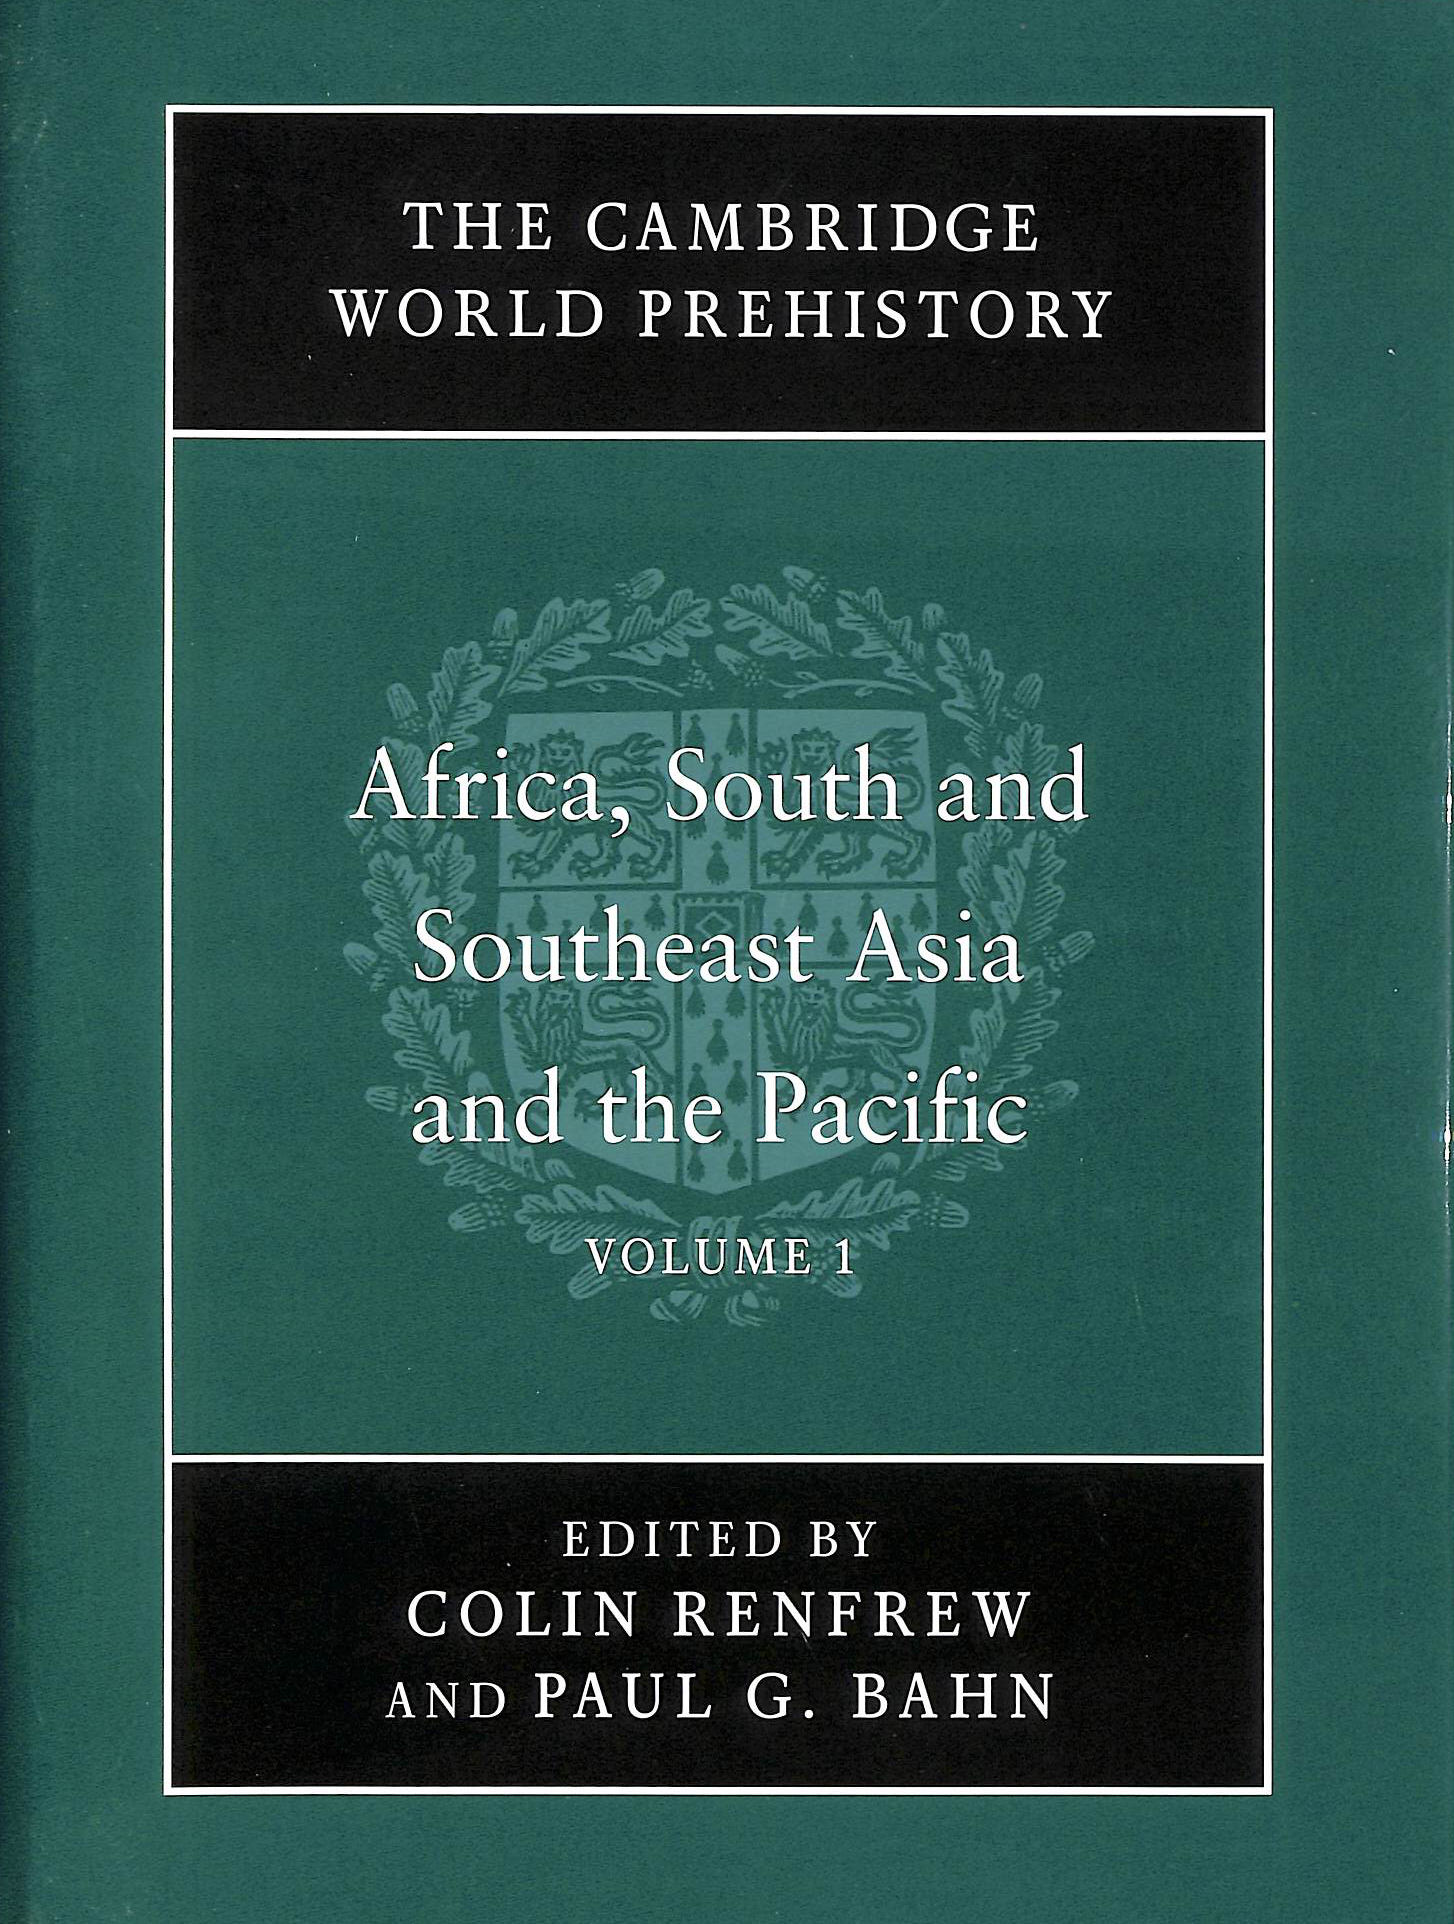 Image for The Cambridge world prehistory Volume 1: Africa, South and Southeast Asia and the Pacific